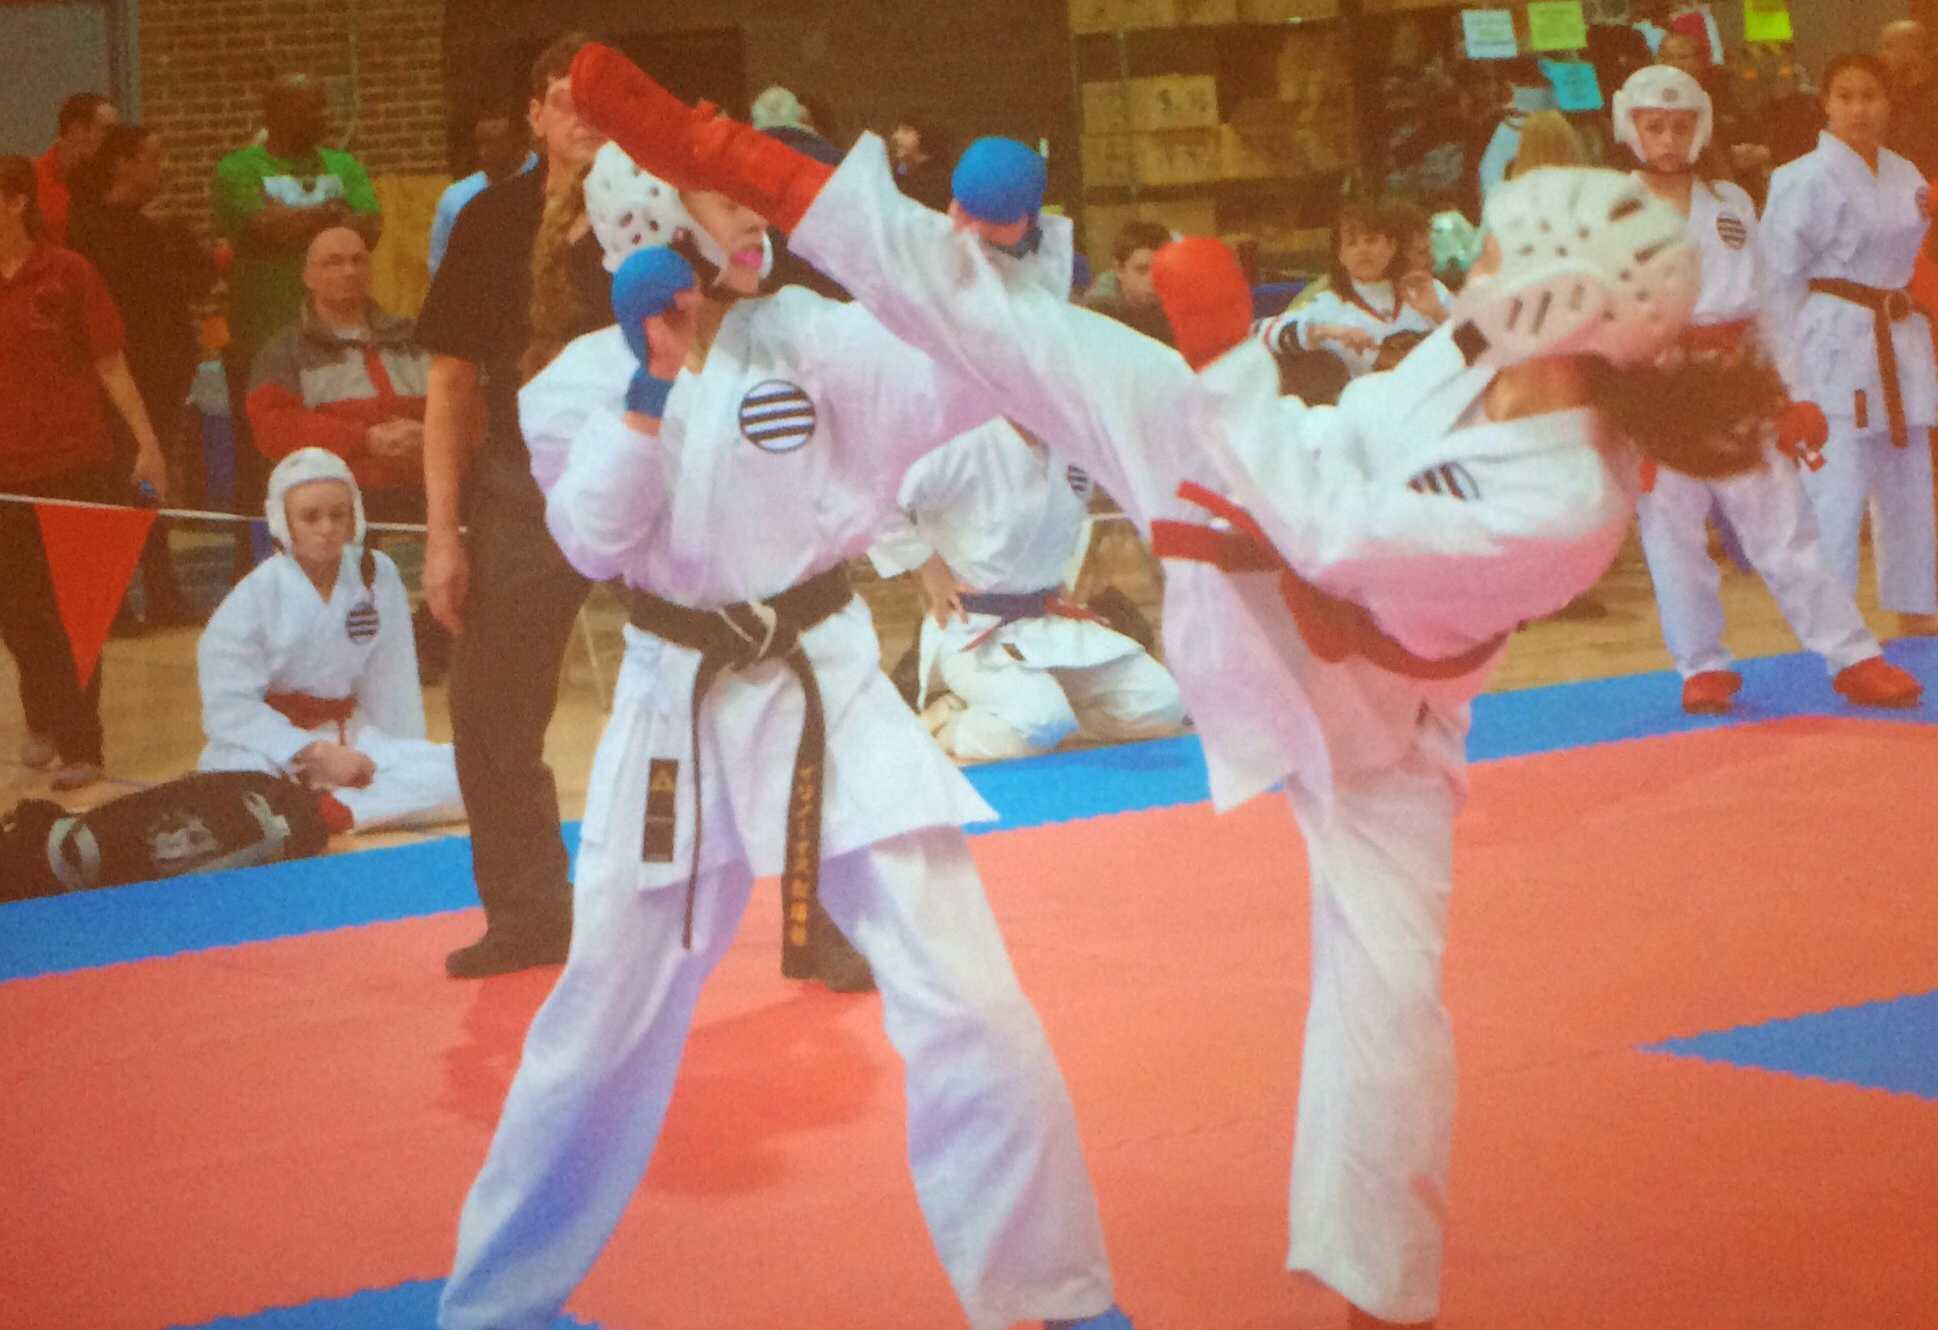 Sophomore Kassidy Mahoney on the right, at the Chicago Classic Karate Tournament in March, 2014.